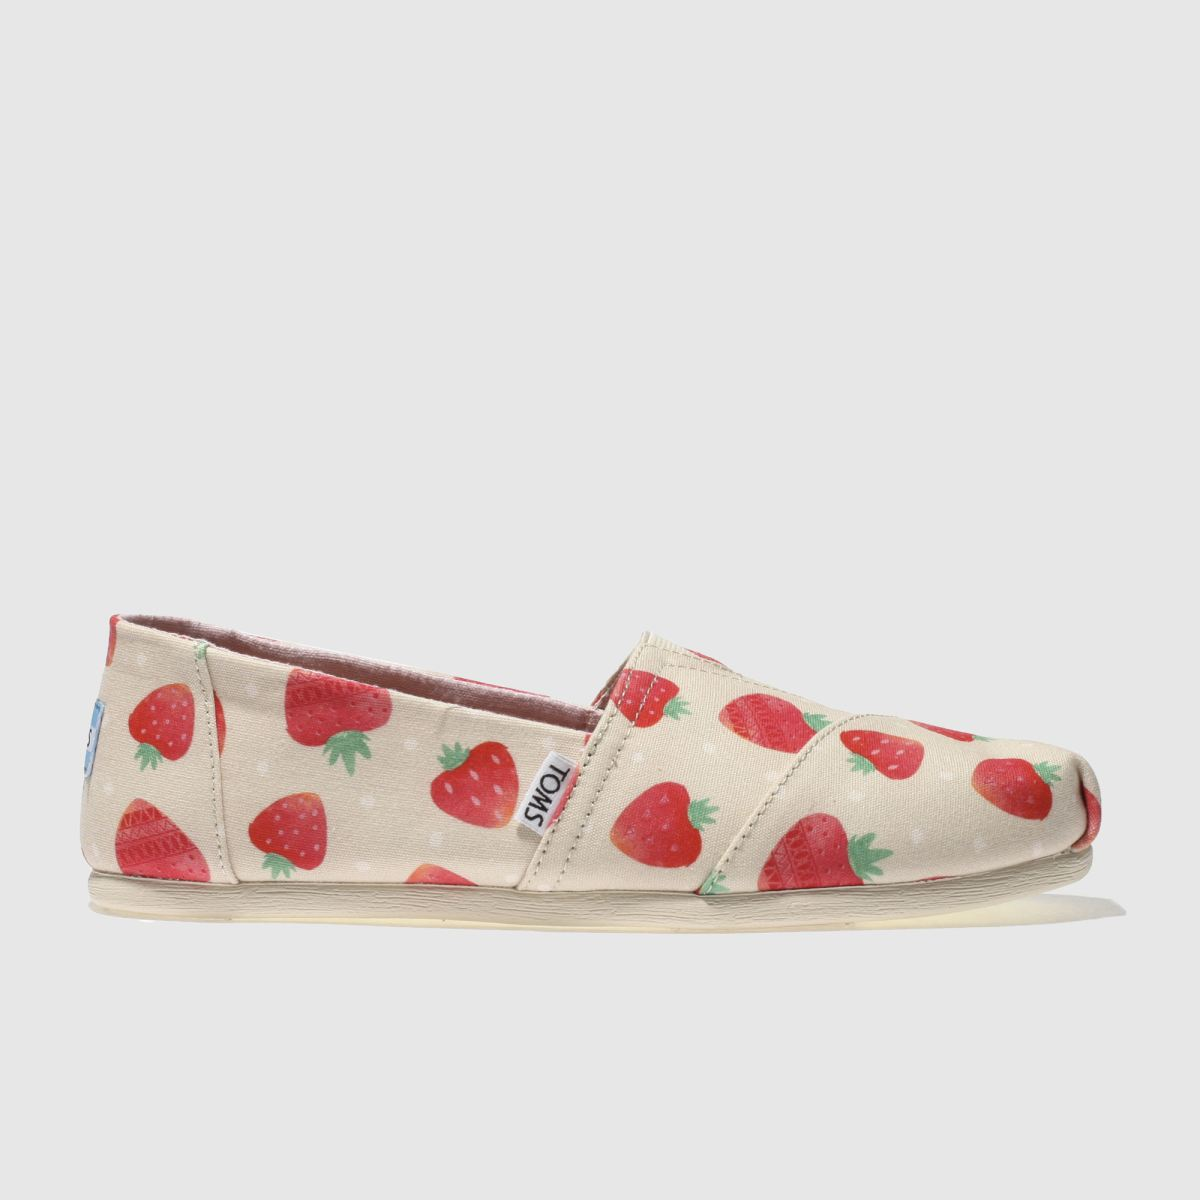 Toms White & Red Alpargata Strawberry Flat Shoes